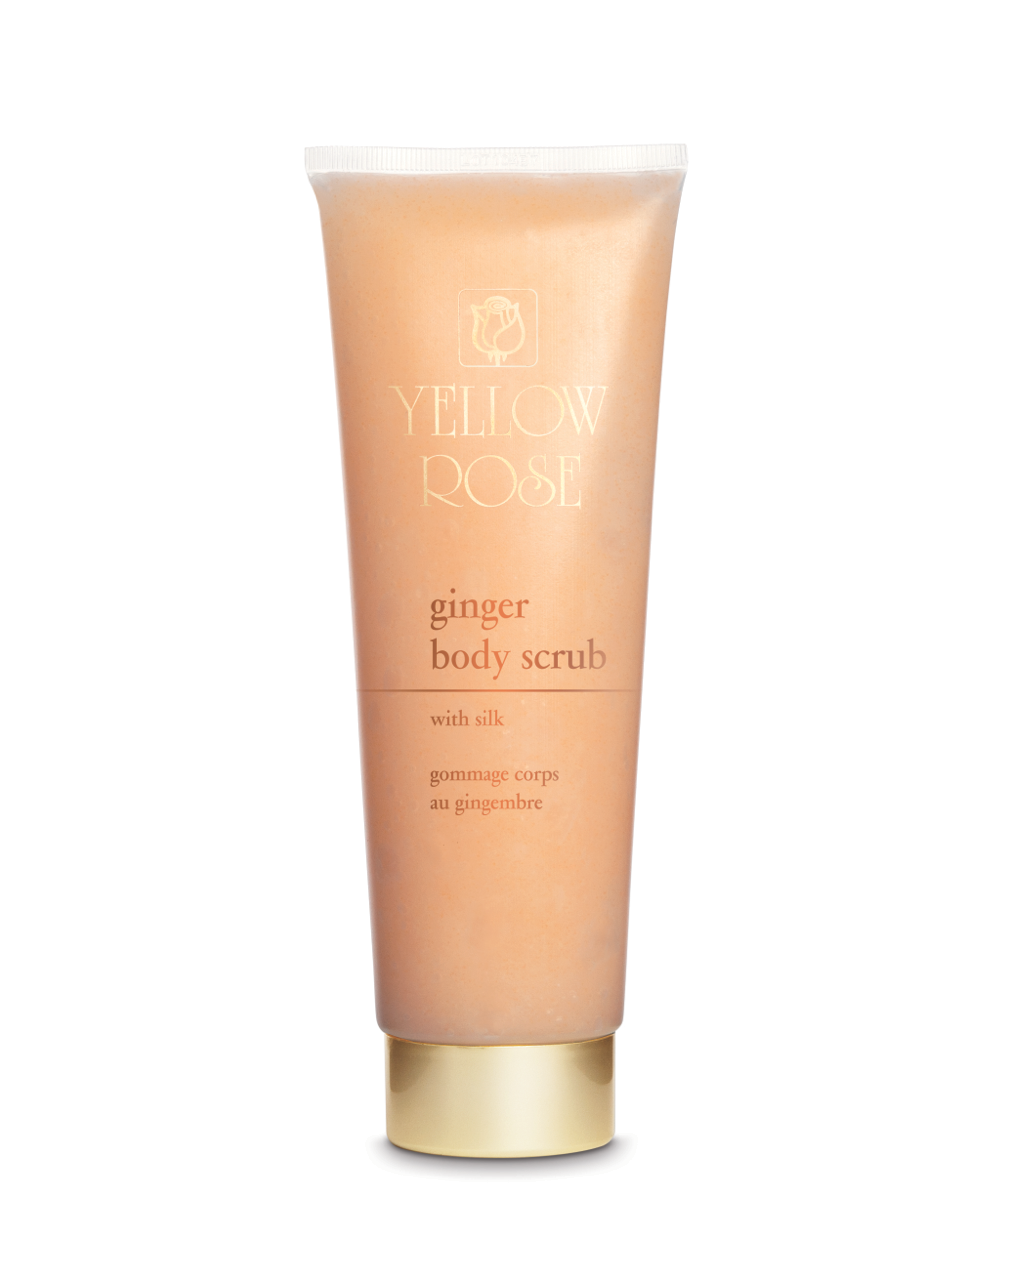 GOLDEN LINE - GINGER BODY SCRUB - 250ml